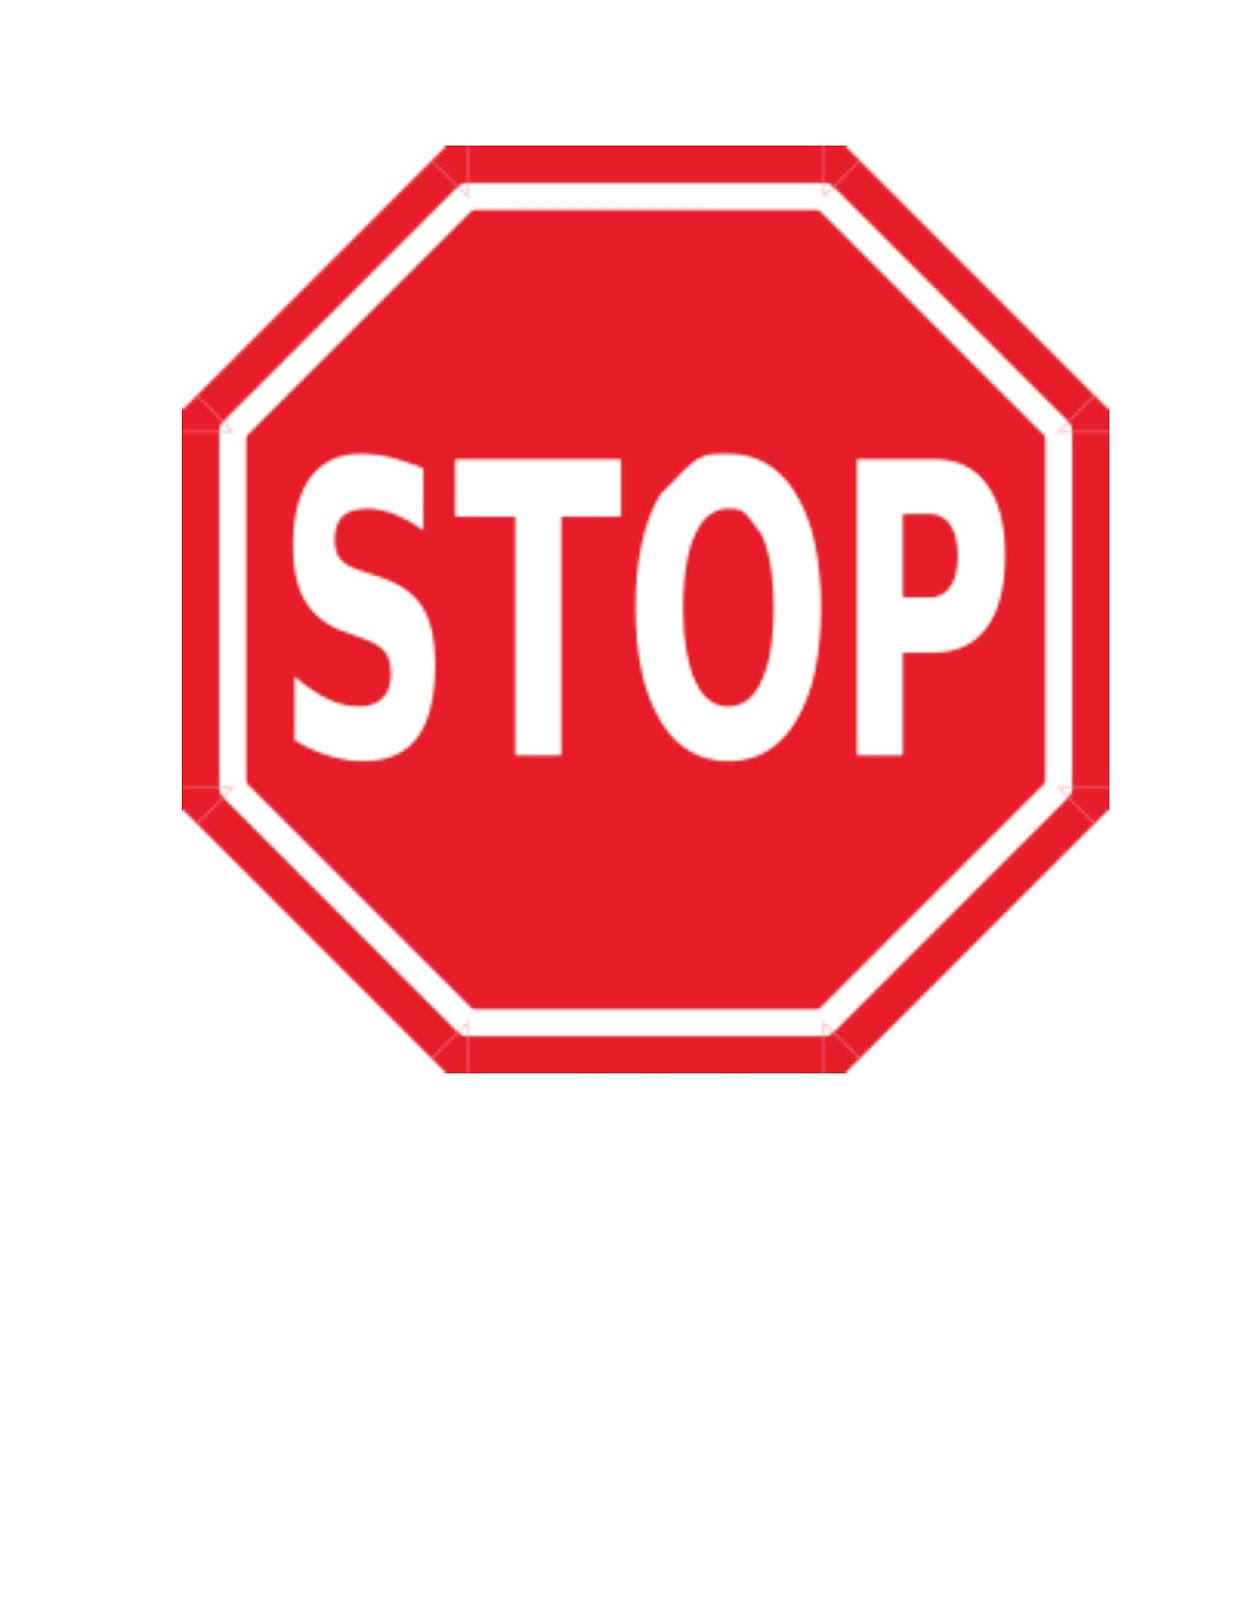 Stop sign clipart images 2.